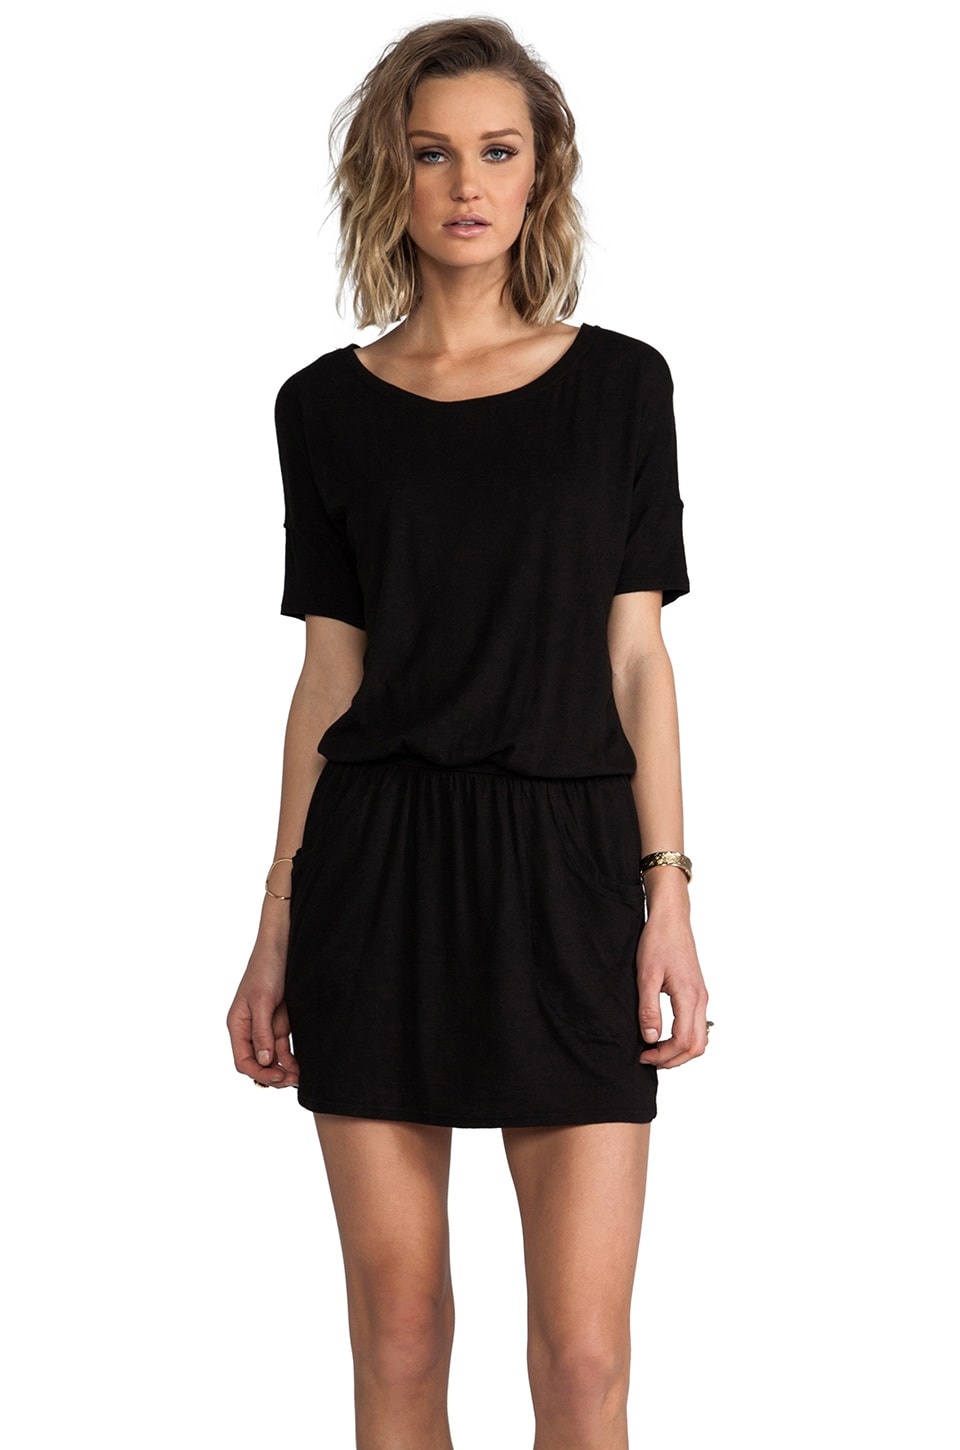 LA Made Short Sleeve Ballet Jersey Dress in Black